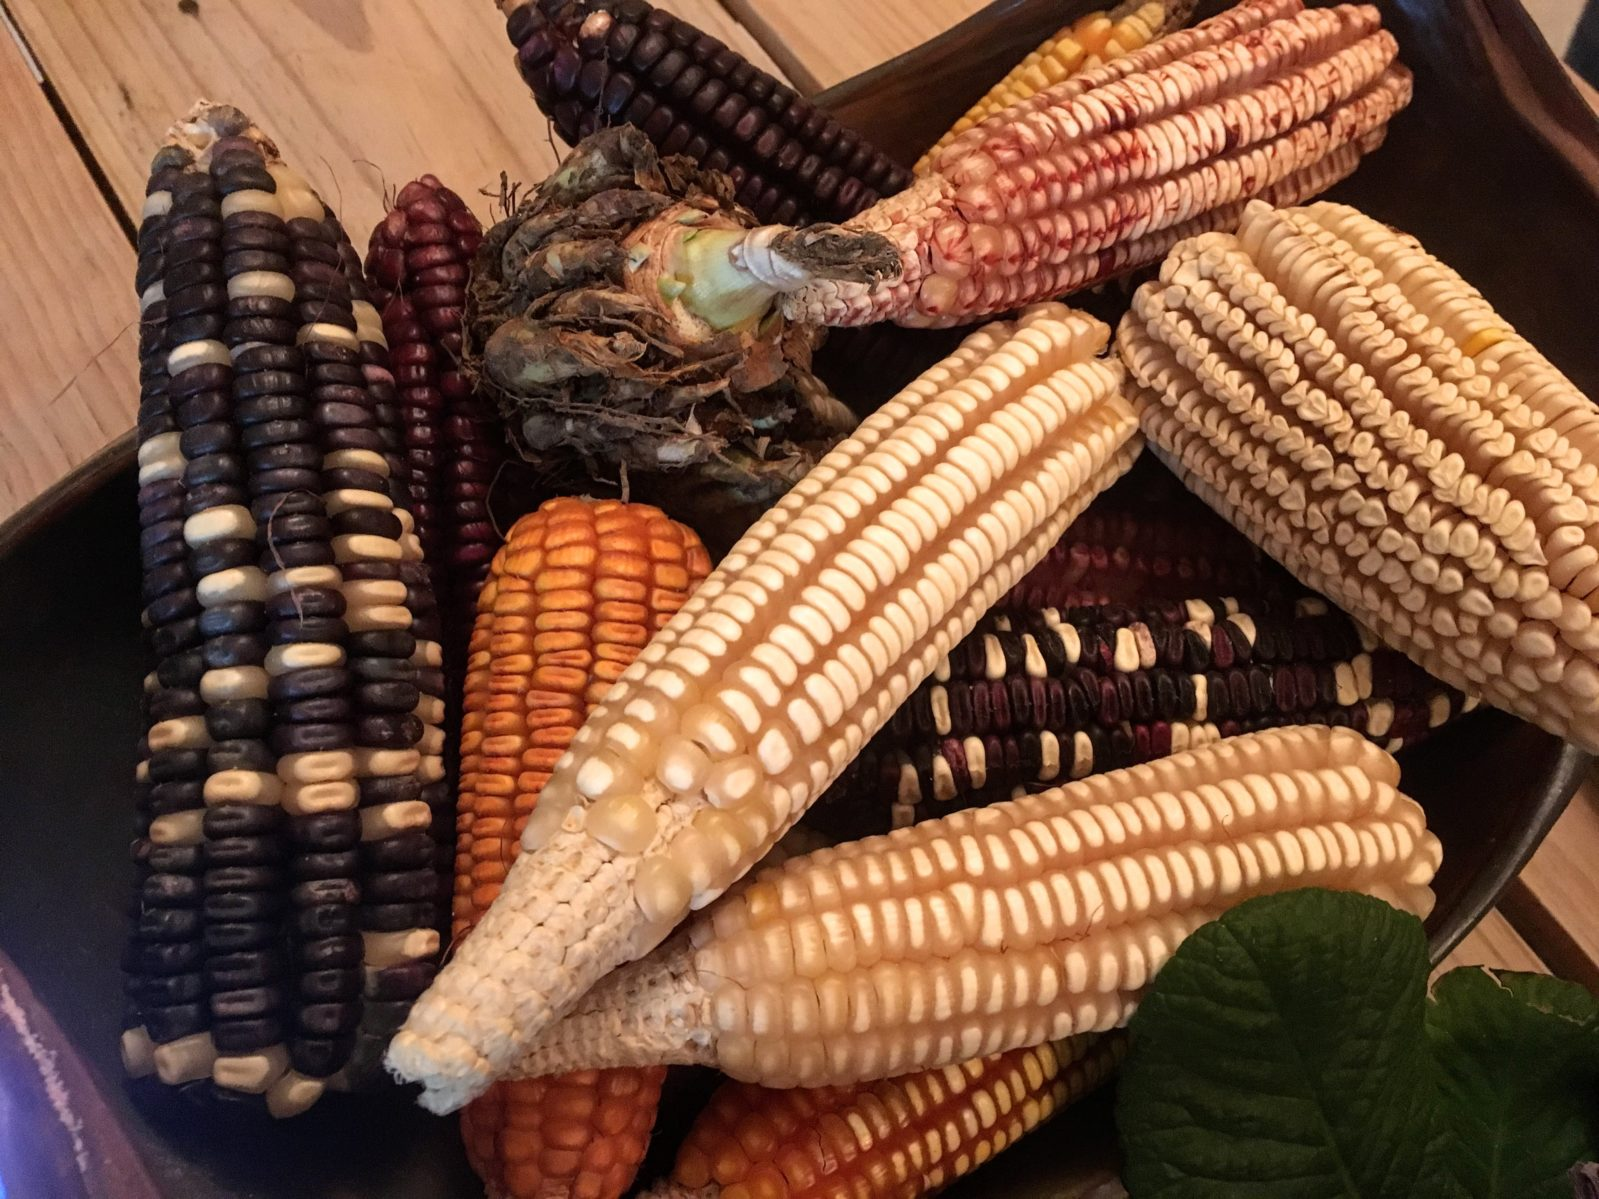 Heirloom corn picked from a small farm in Oaxaca, Mexico. Credit: Renée Alexander. July 2018.